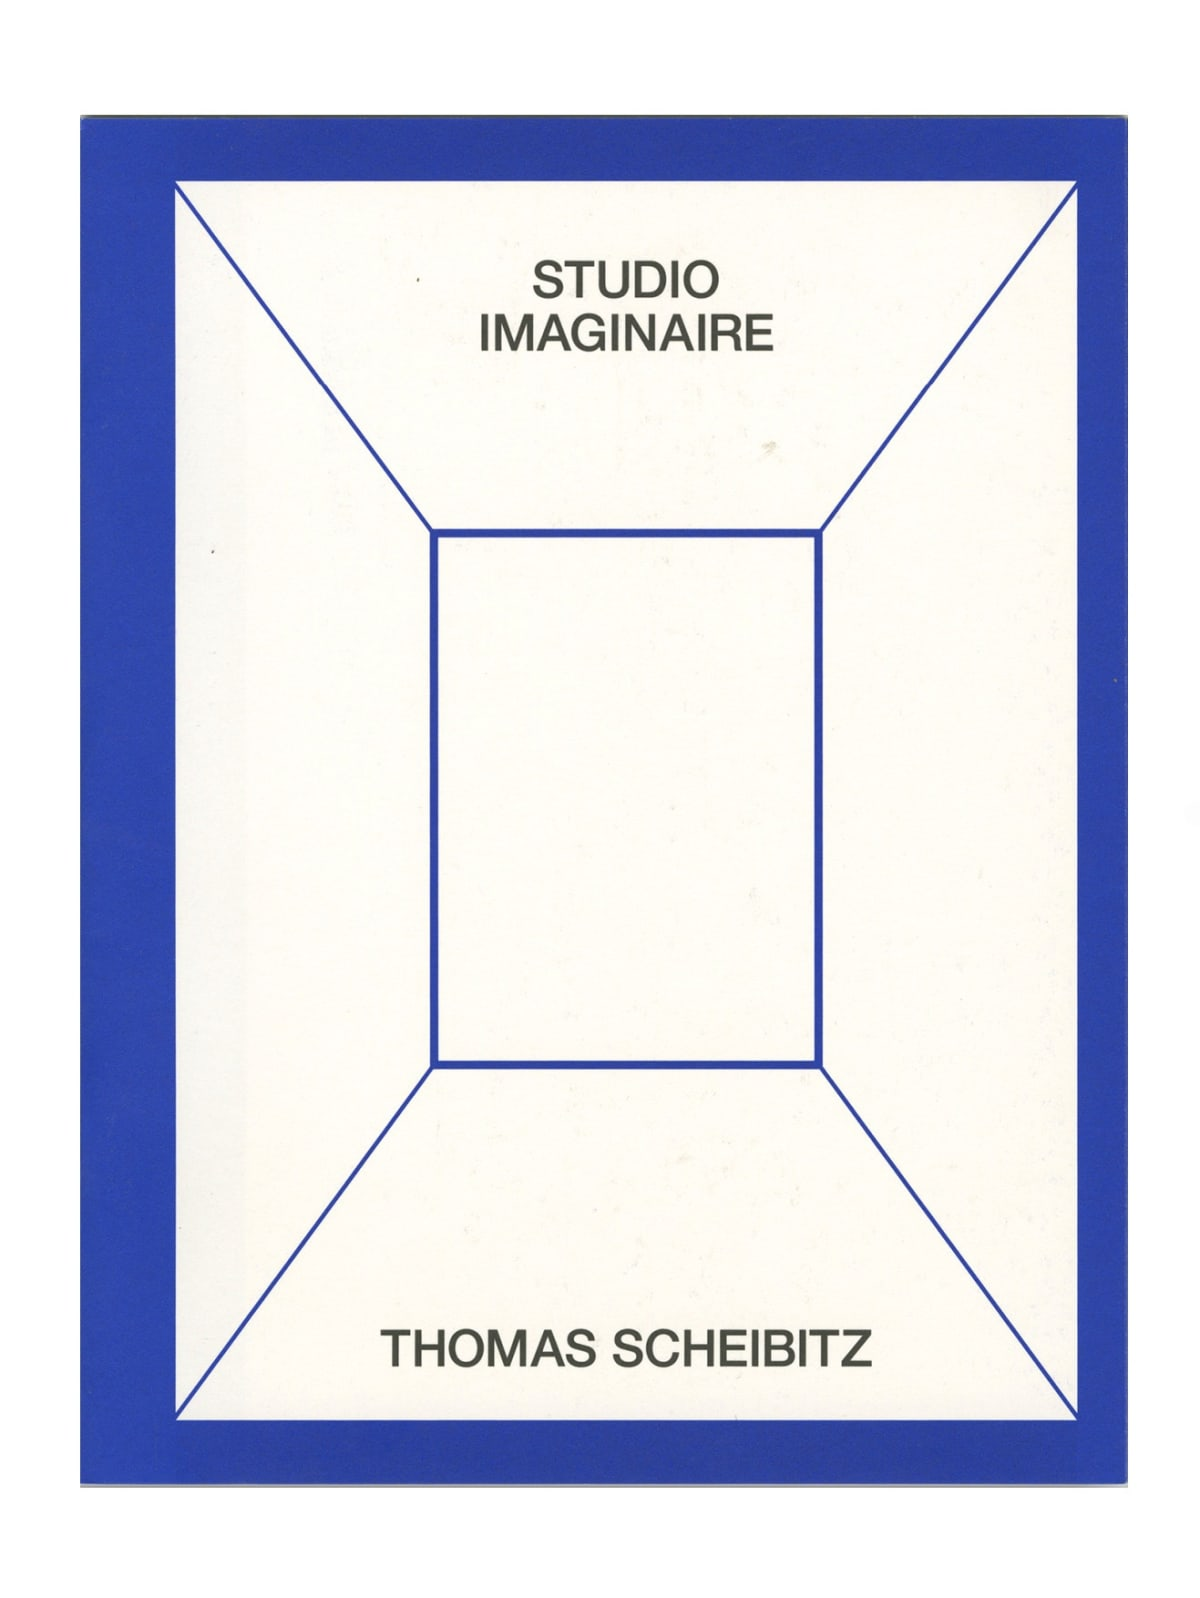 image of scheibitz book cover